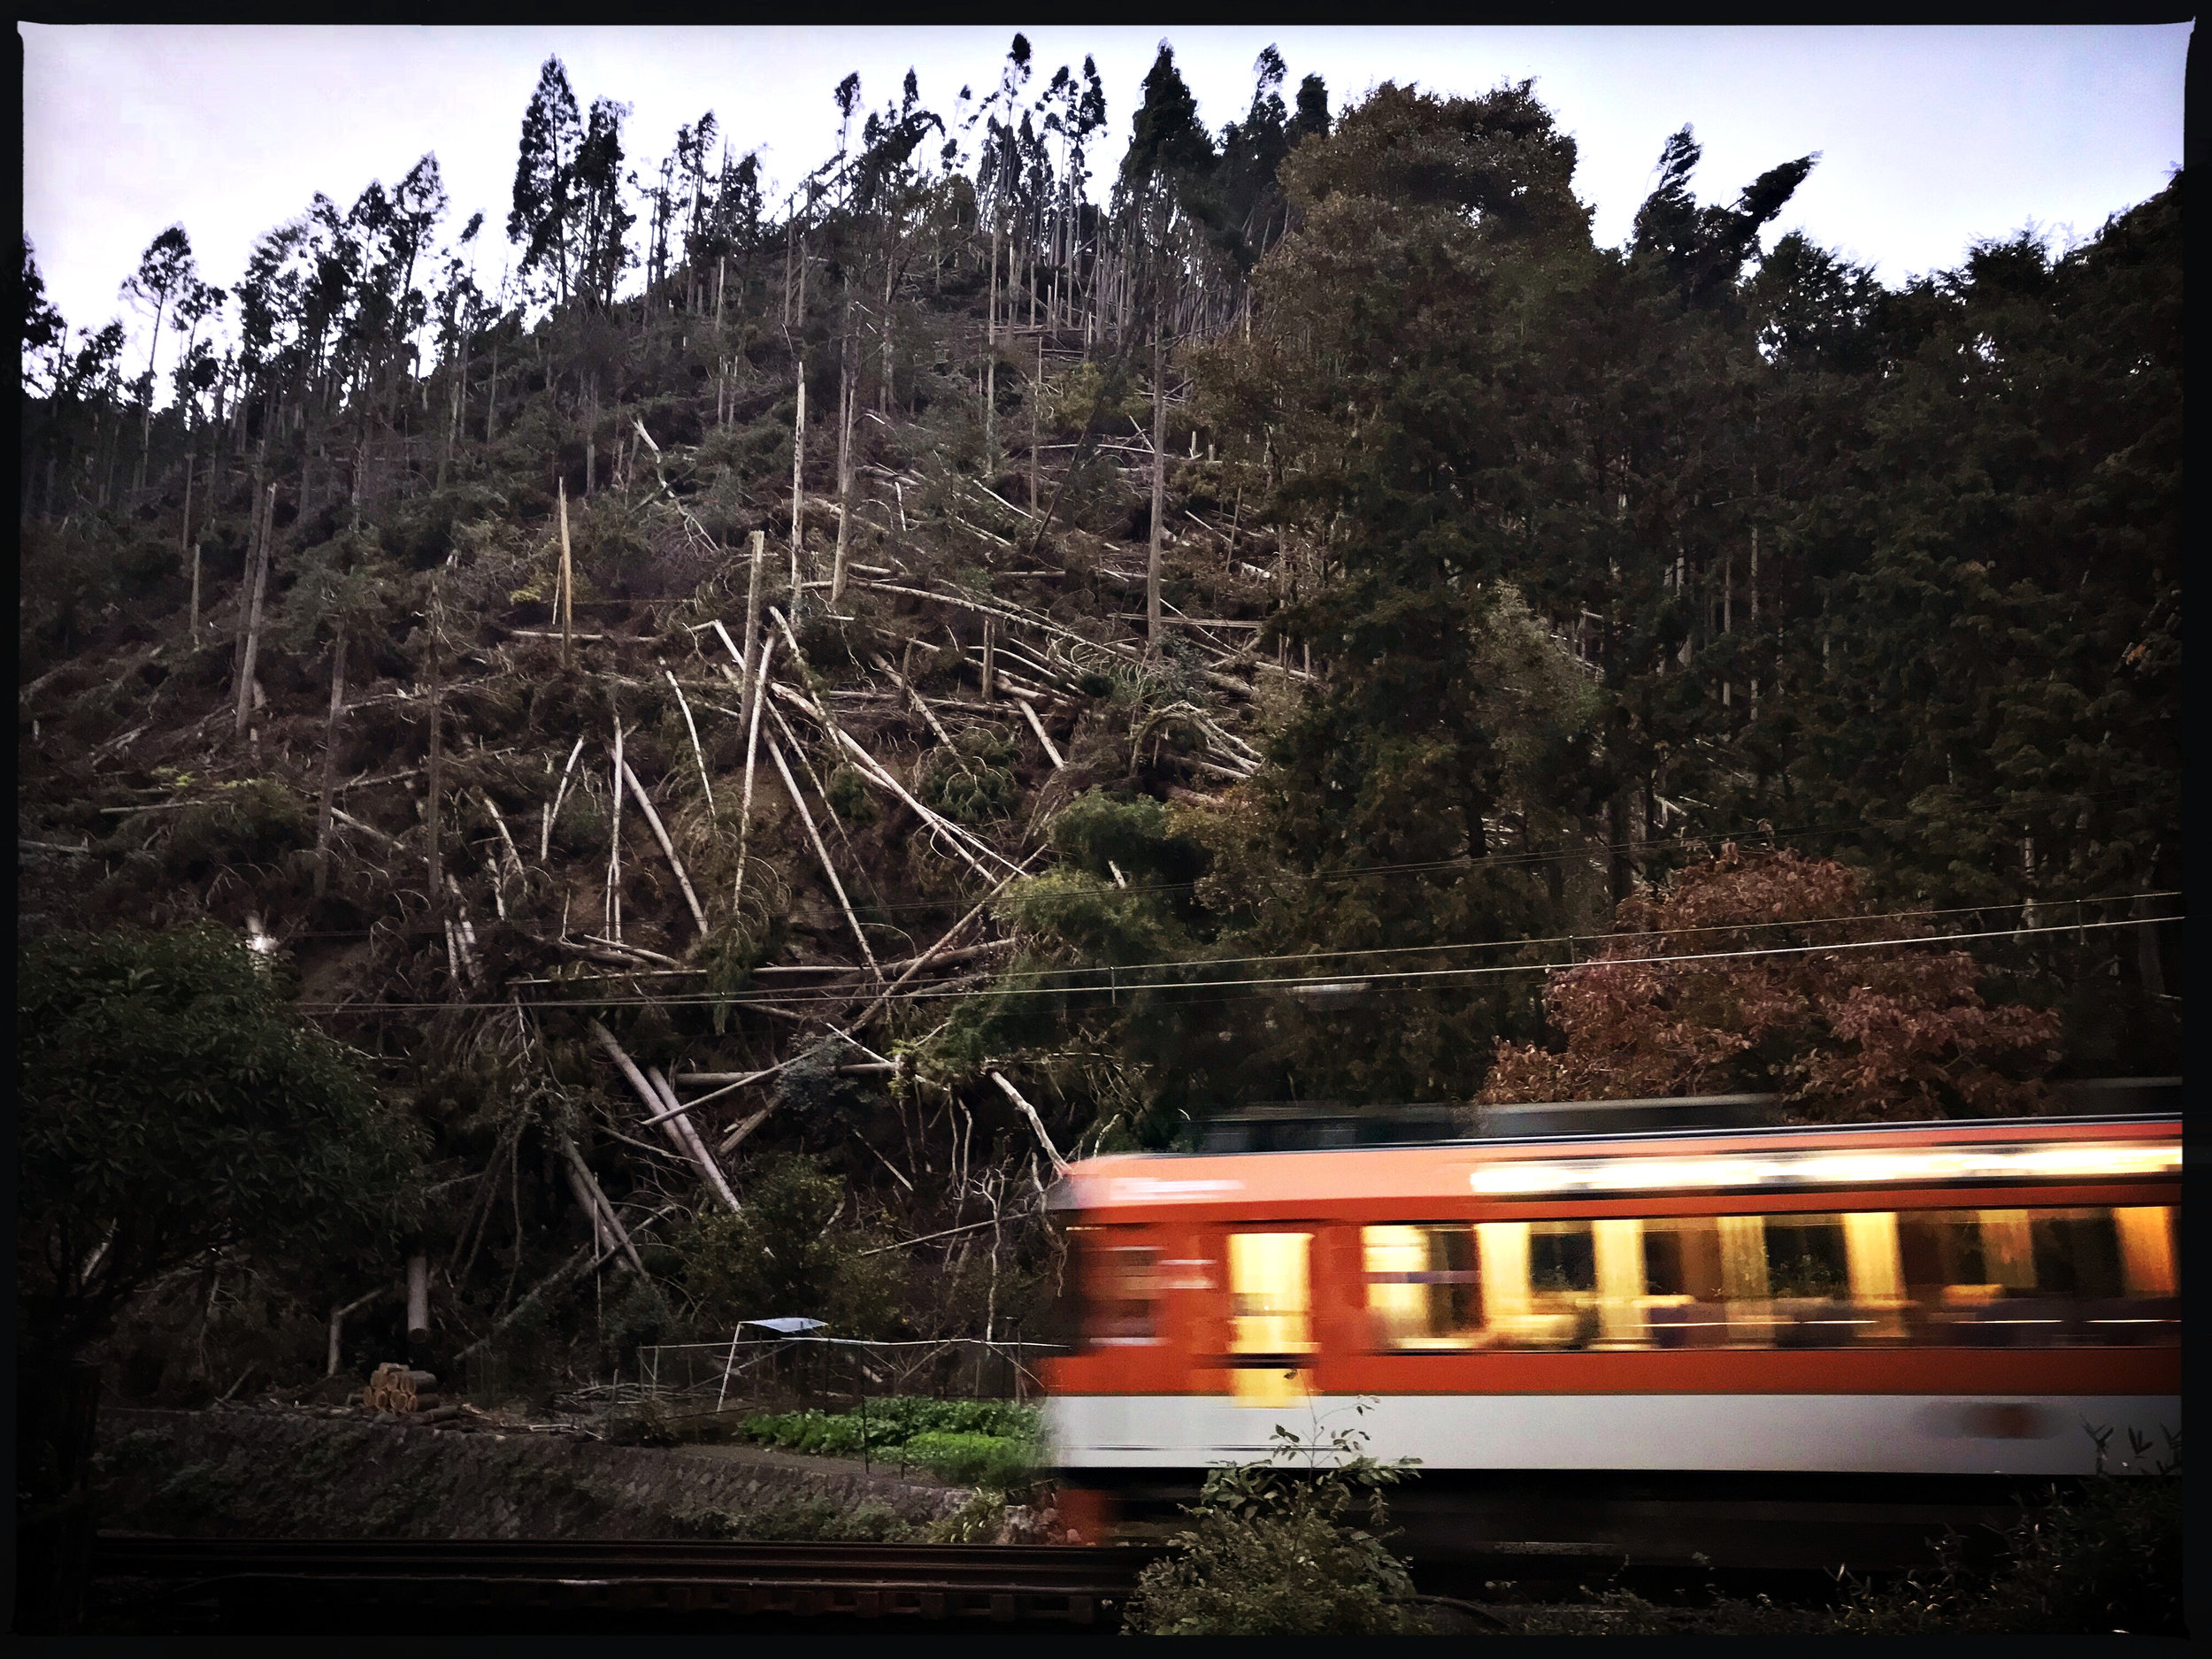 One stop away from Karuma dera, a train passed by a mountain shorn of its trees.